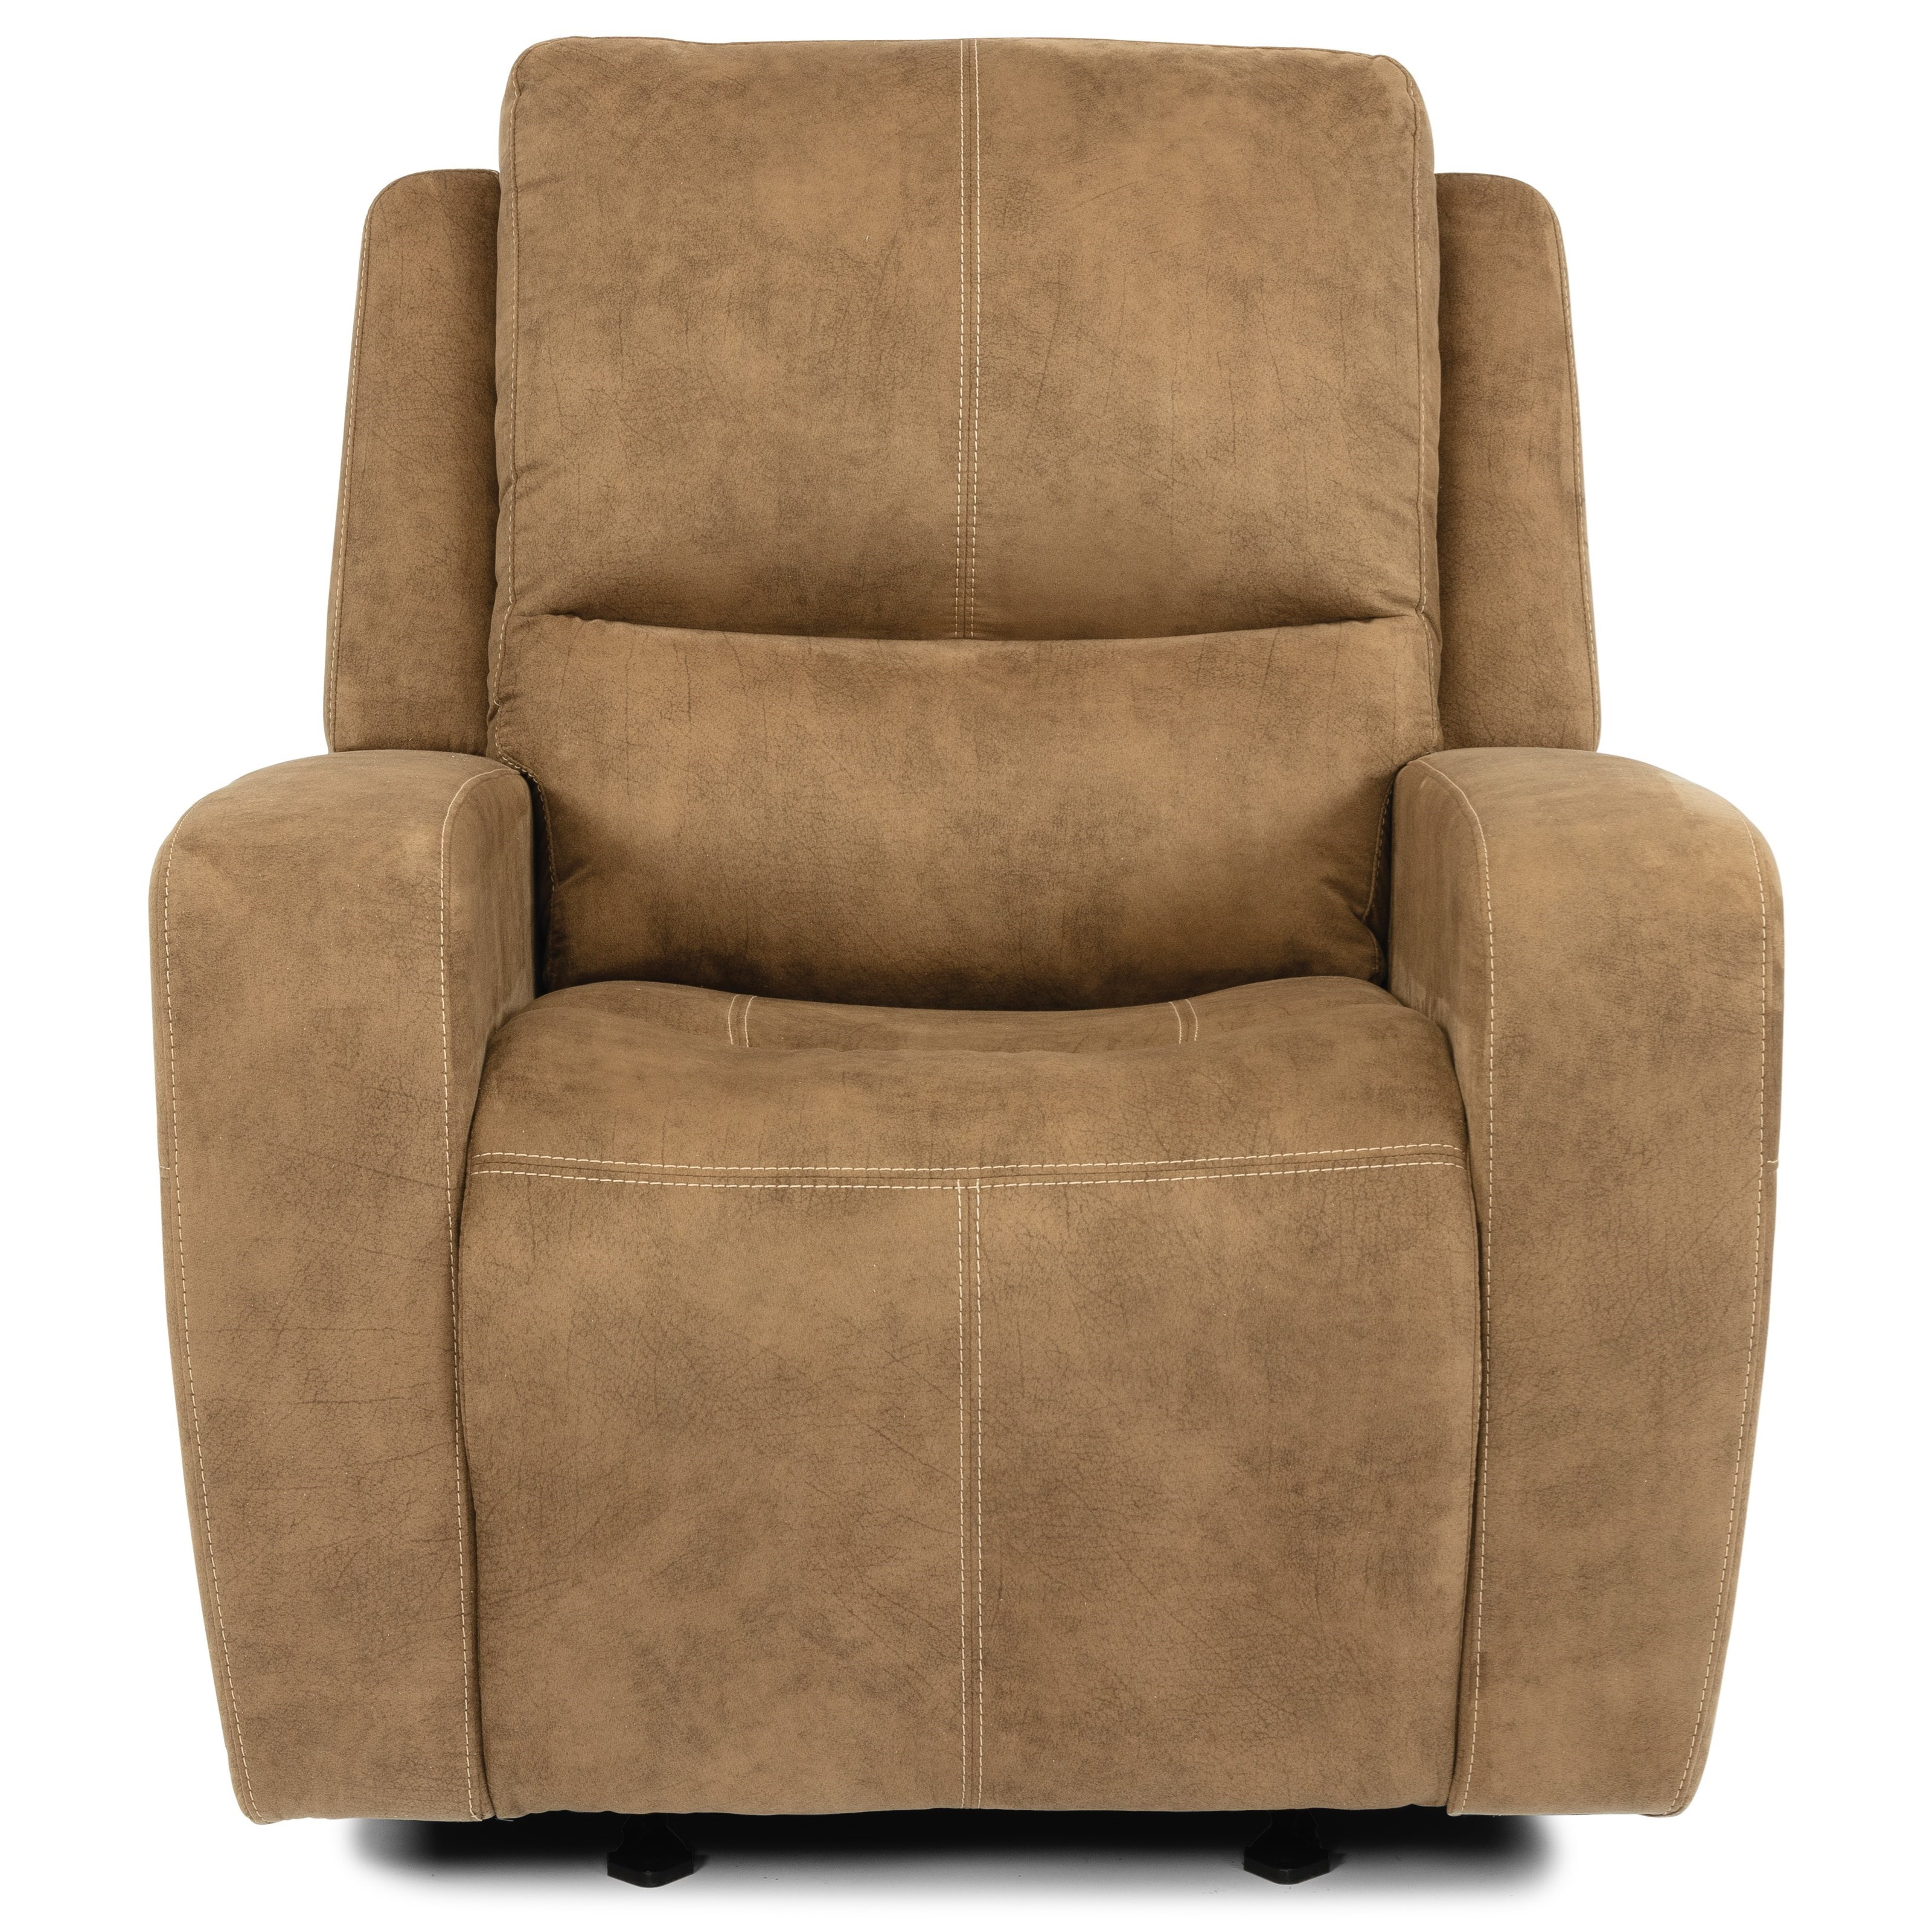 Latitudes - Aiden Power Recliner by Flexsteel at Pilgrim Furniture City